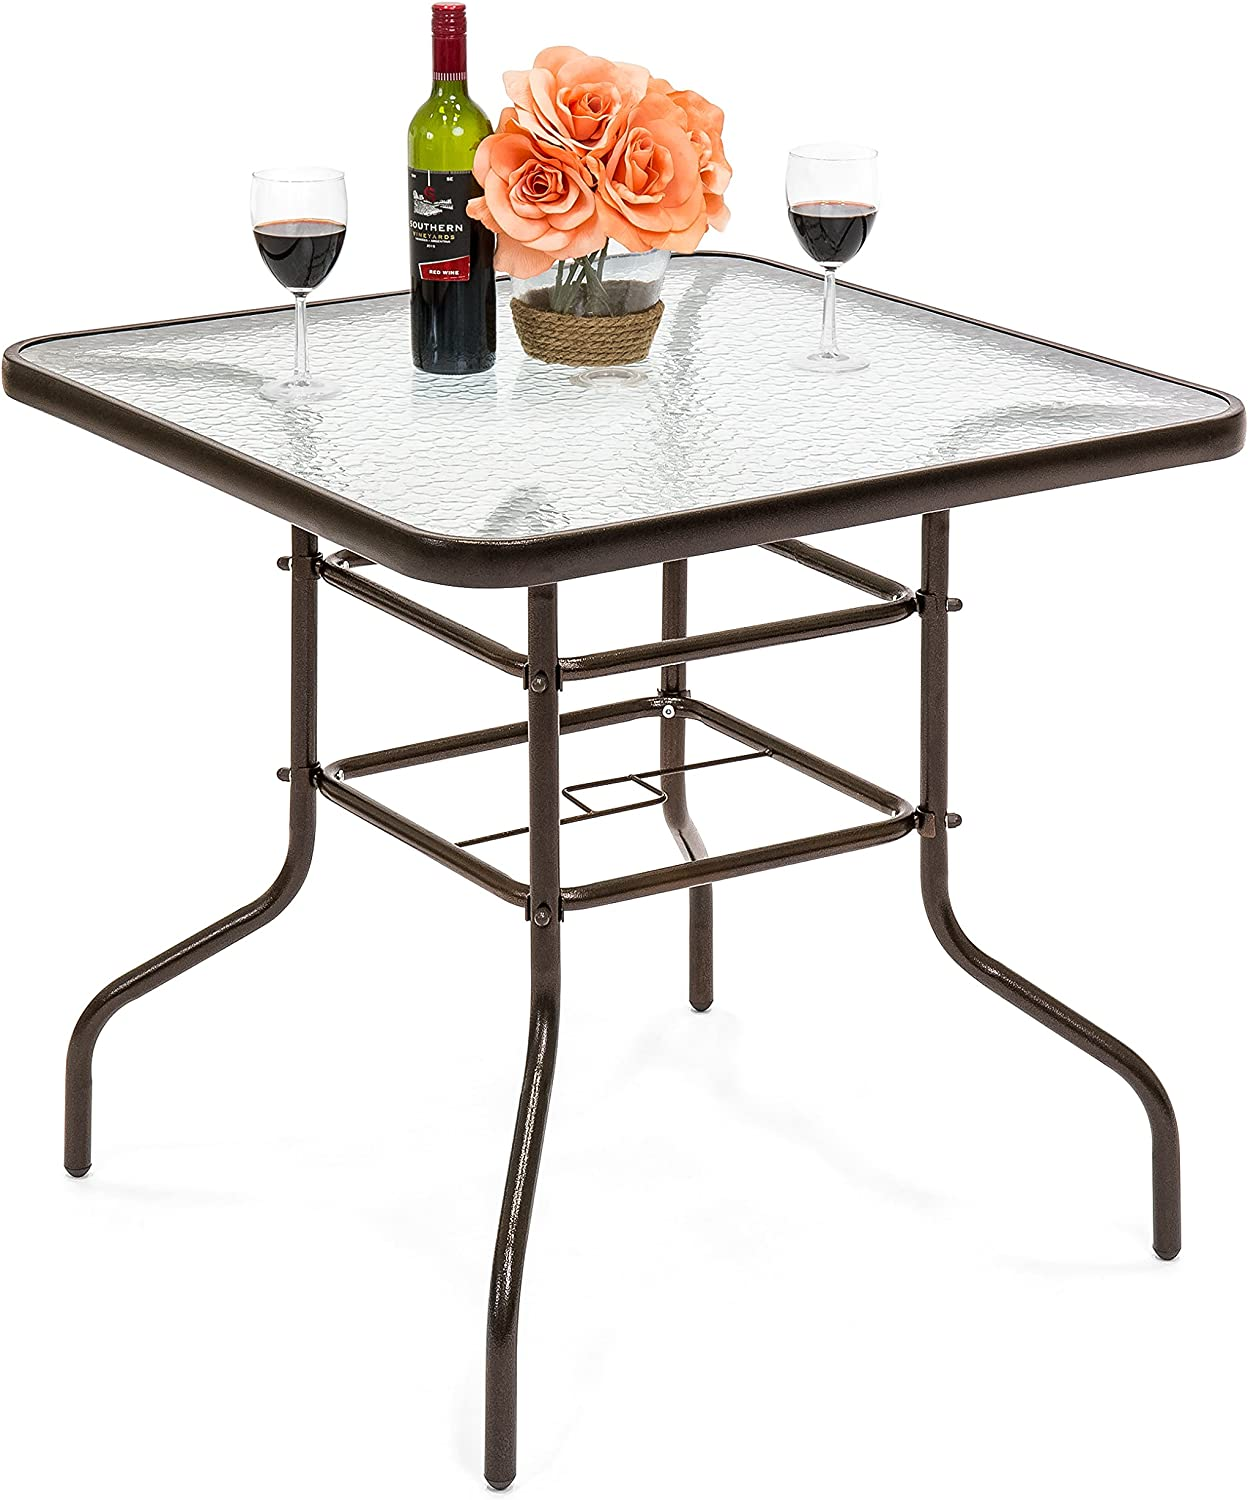 Florabest Aluminium Folding Table Glass Table Top Made of Safety Glass with Tempered Glass Top Ideal for Balcony Garden or Terrace